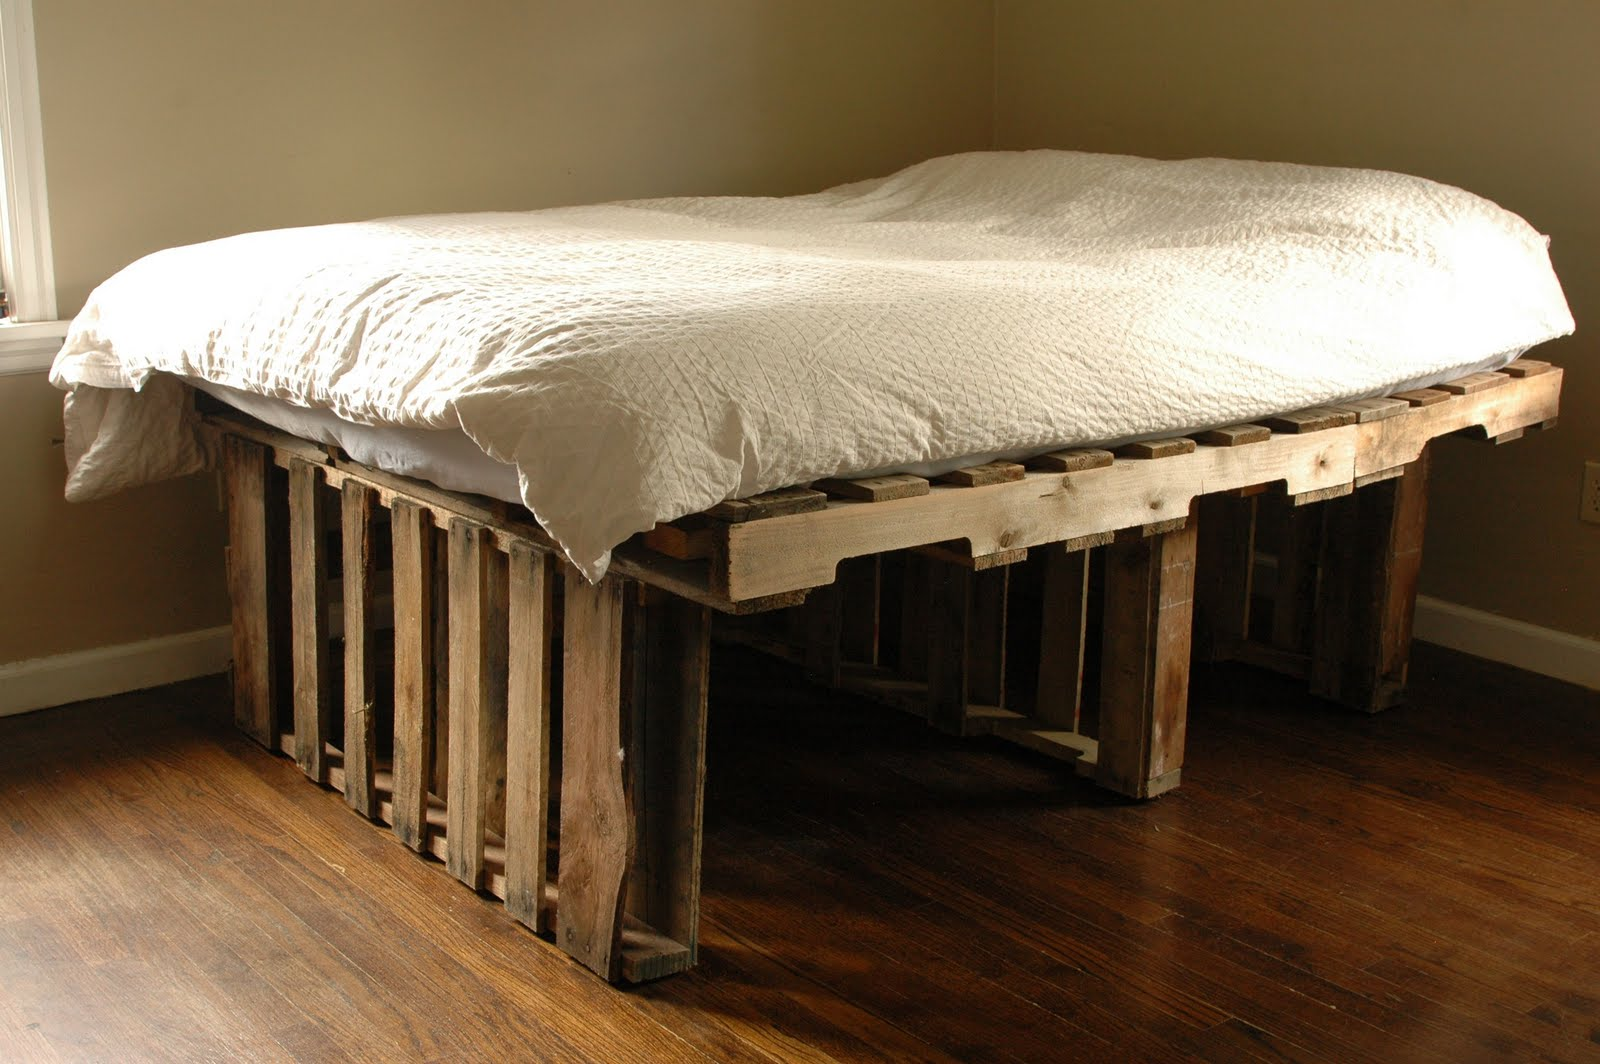 Furniture gang 12 1 09 1 1 10 for Pallet bed frame with side tables